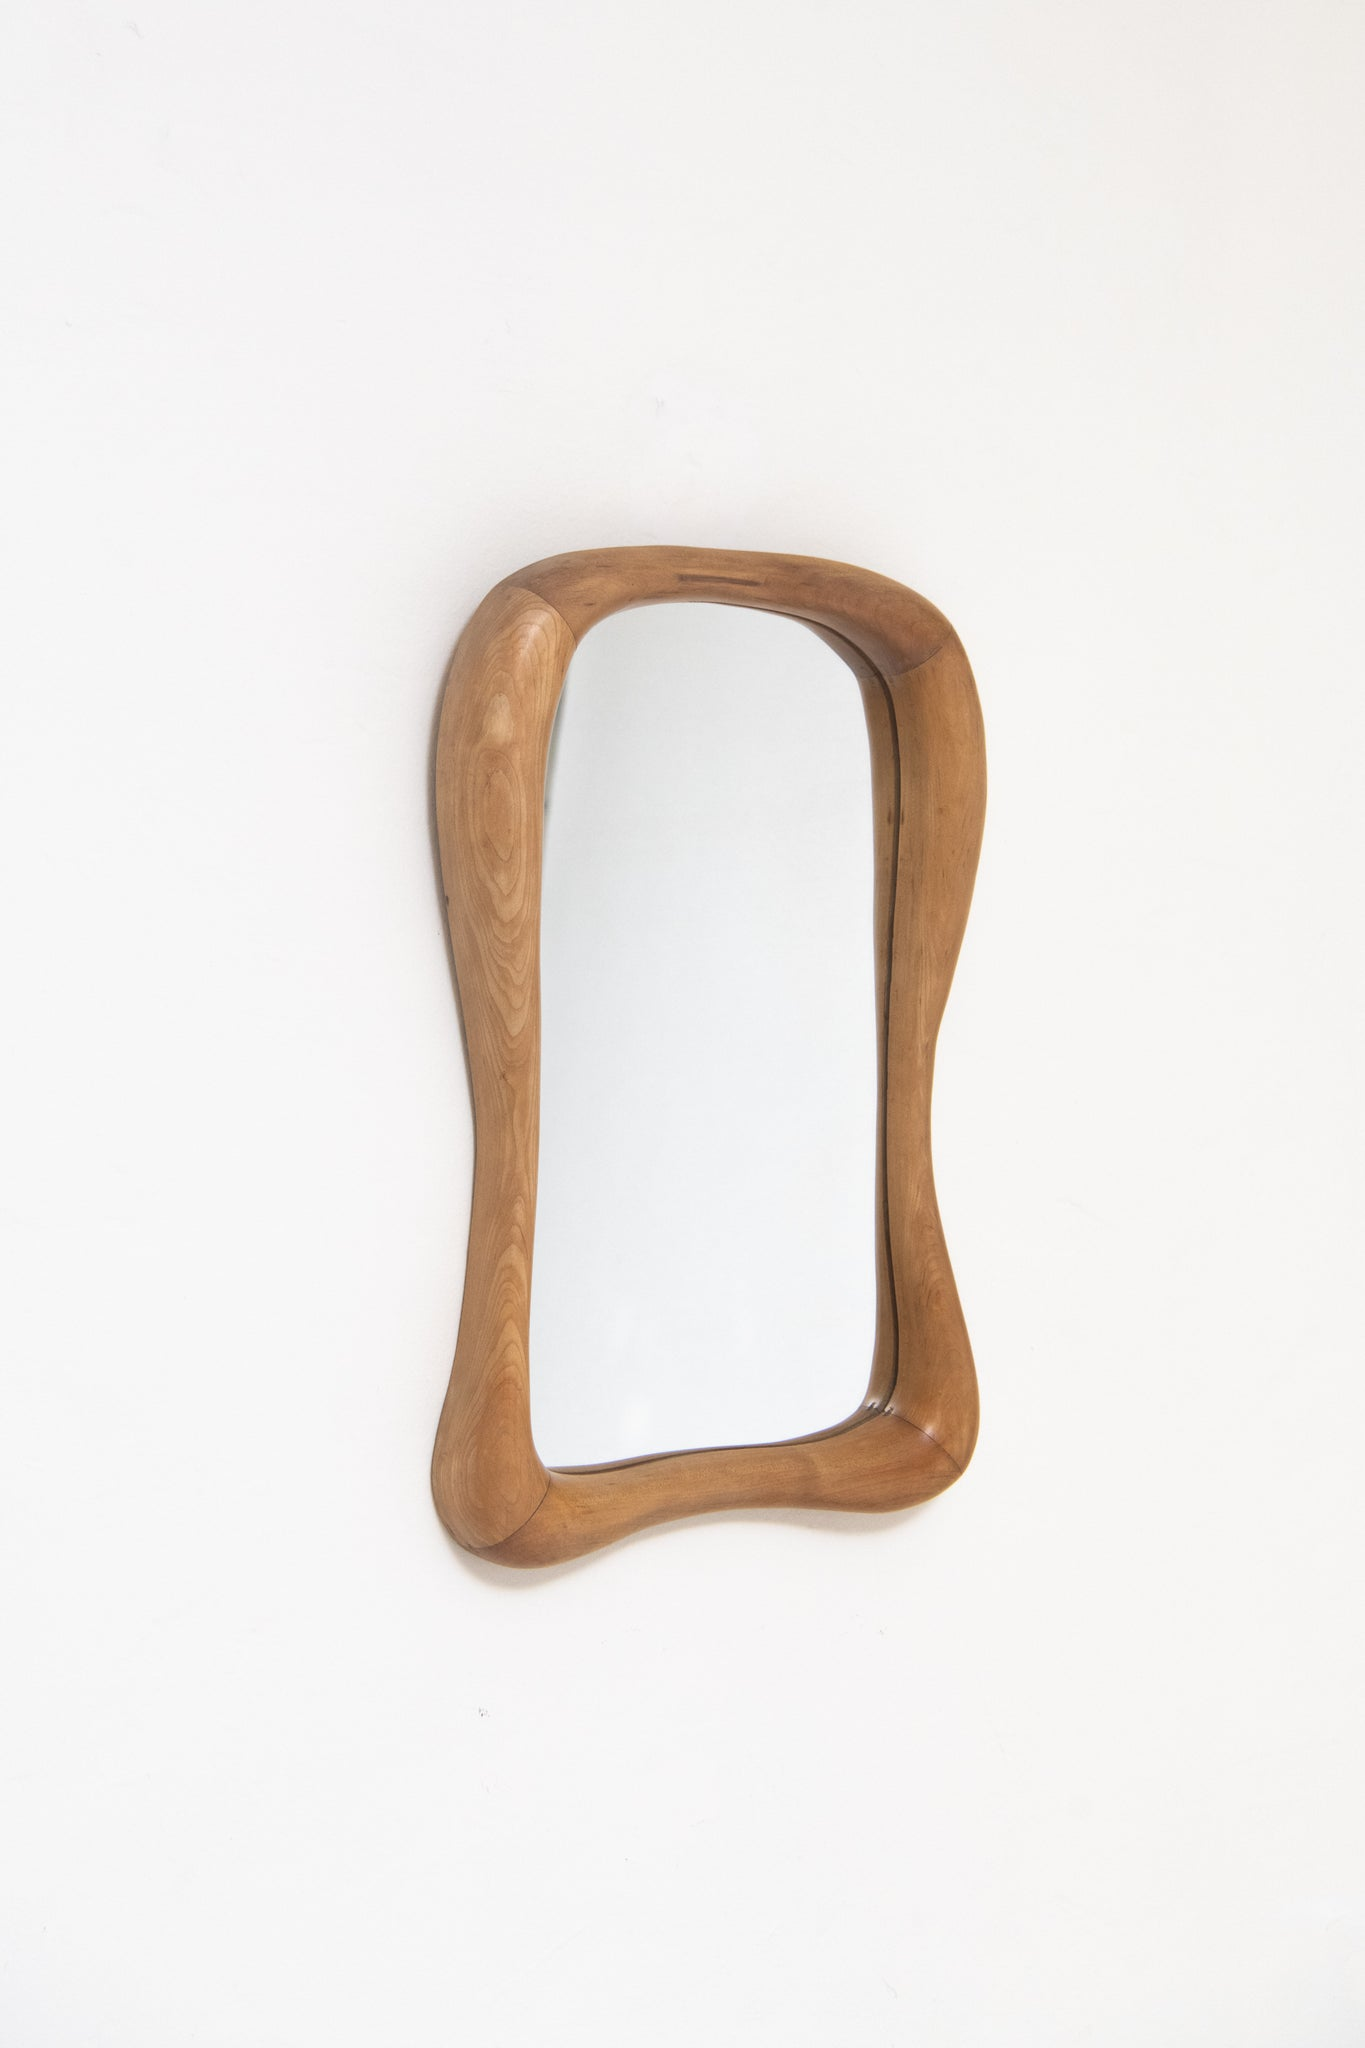 SWISS, SMOOTH CARVED ANTHROPOSOPHIC MIRROR, C. 1930